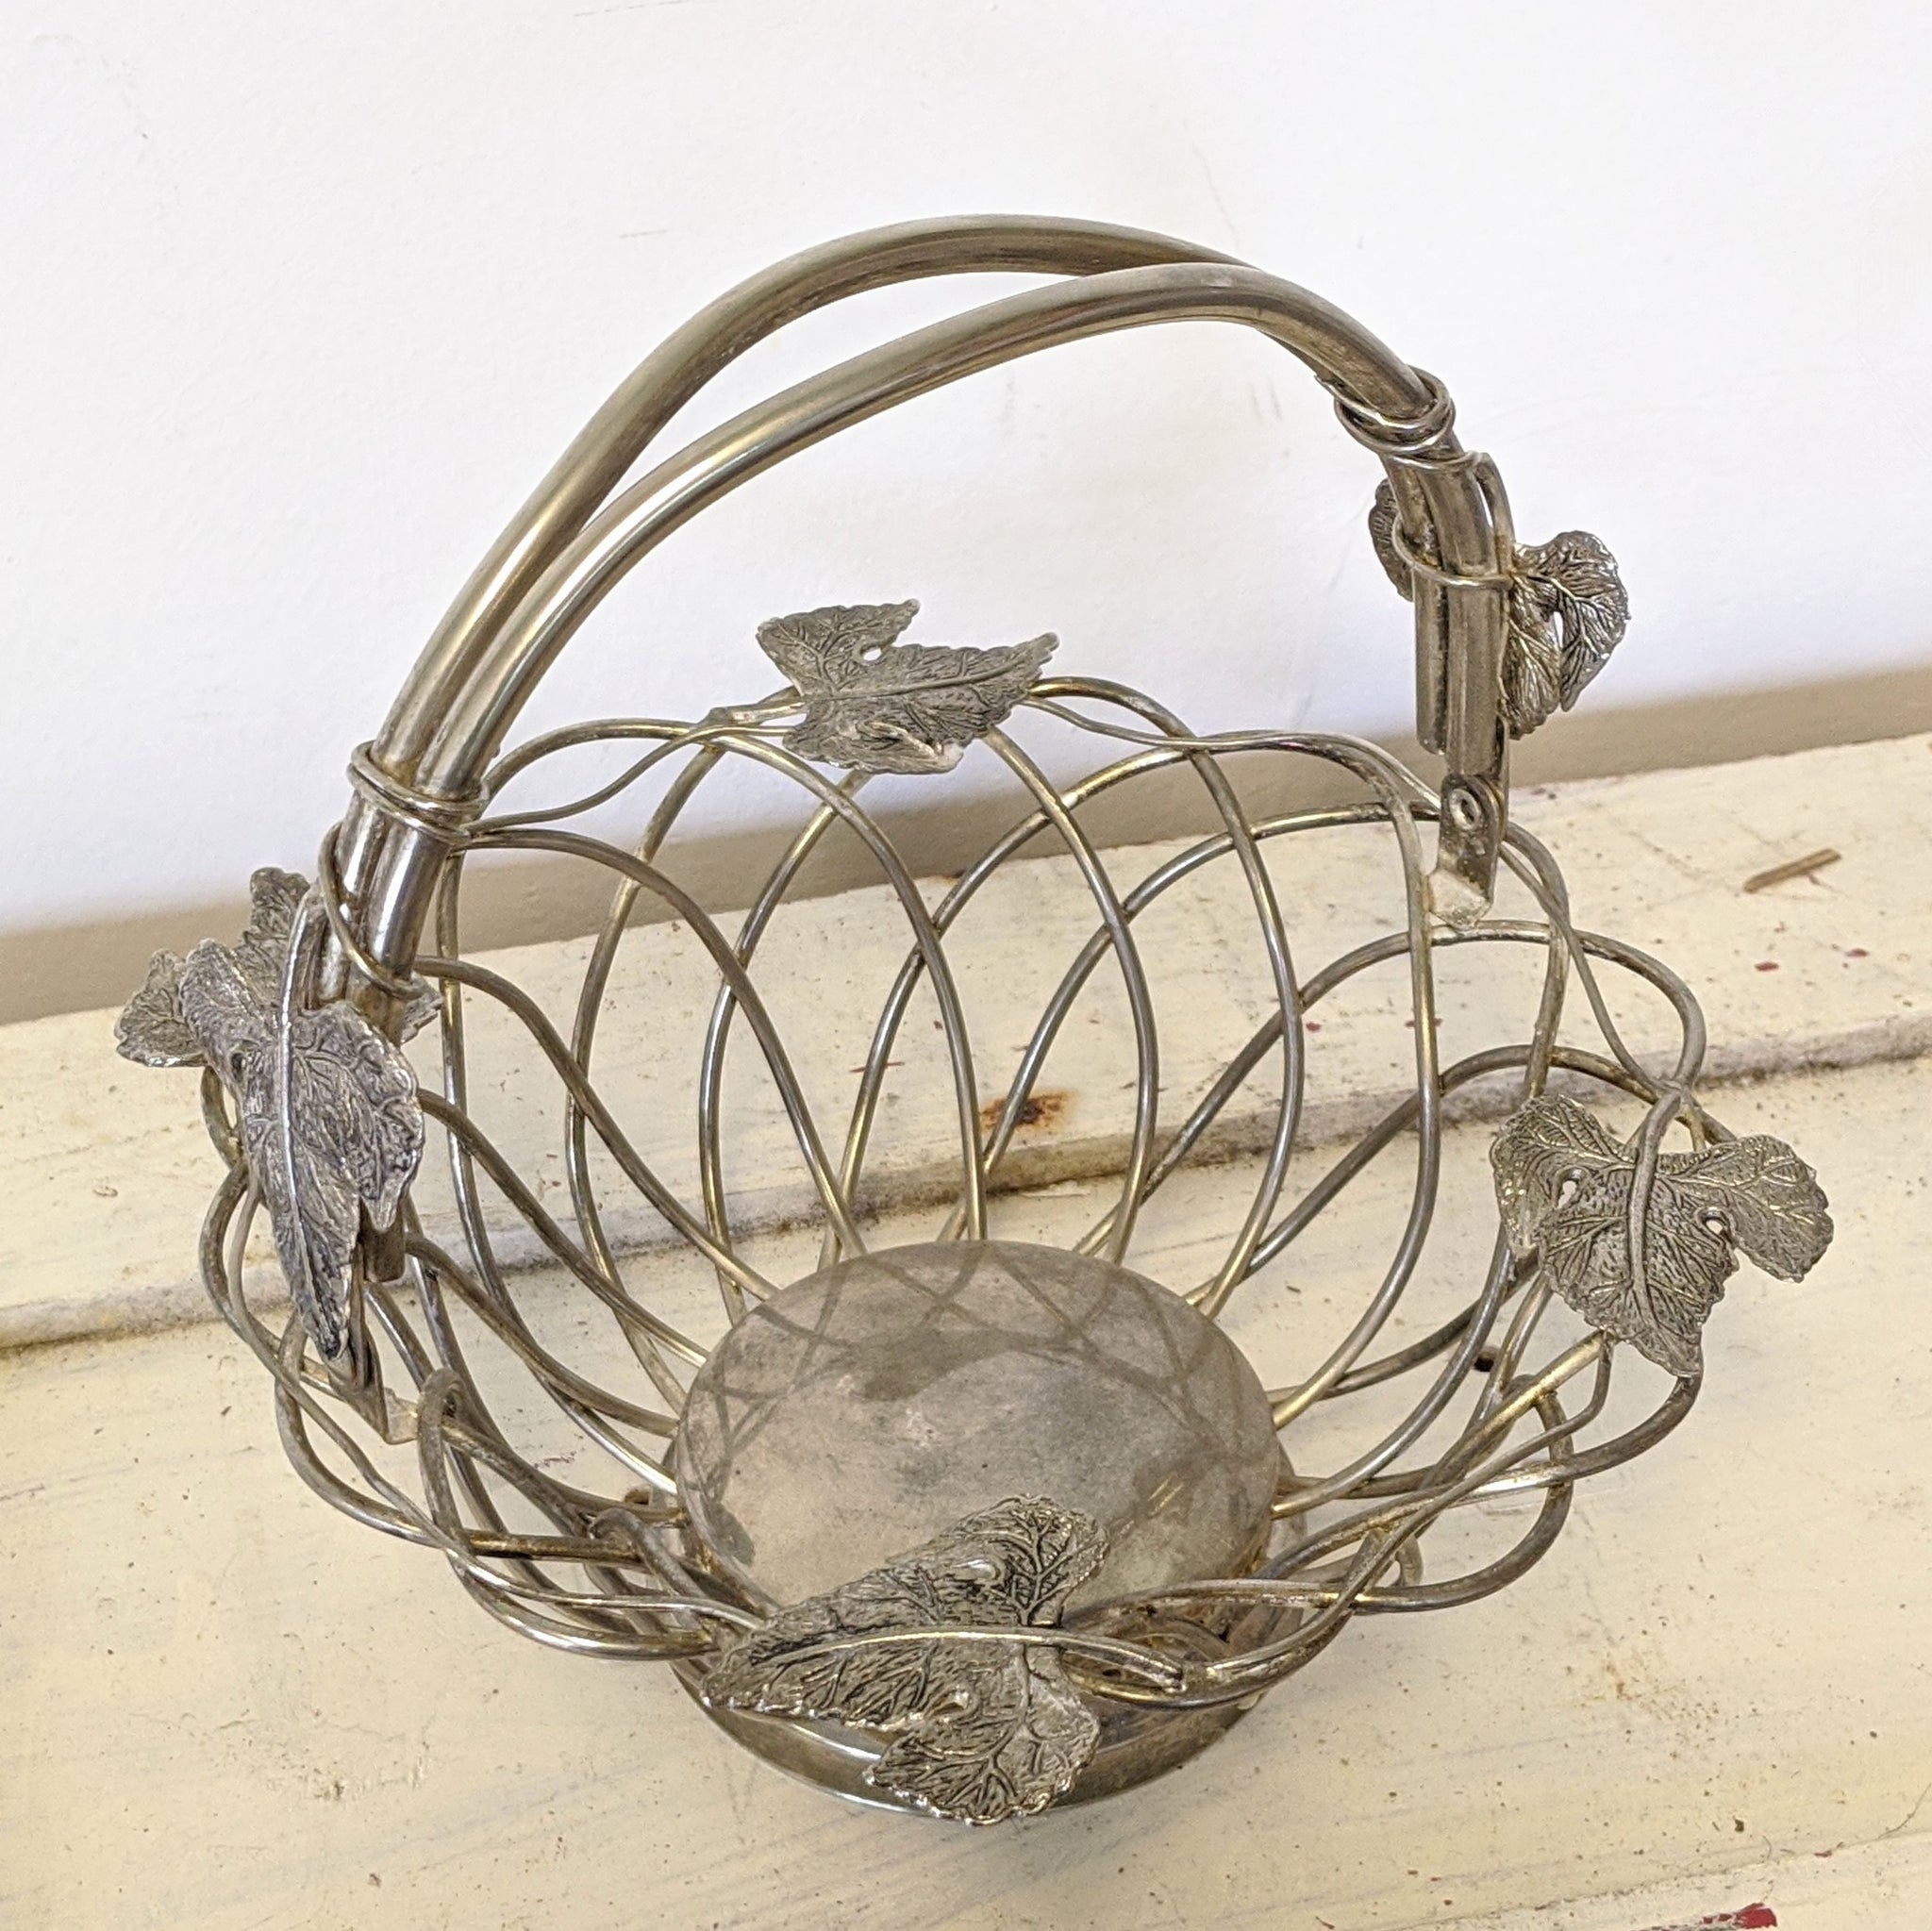 Vintage metal basket with leaves